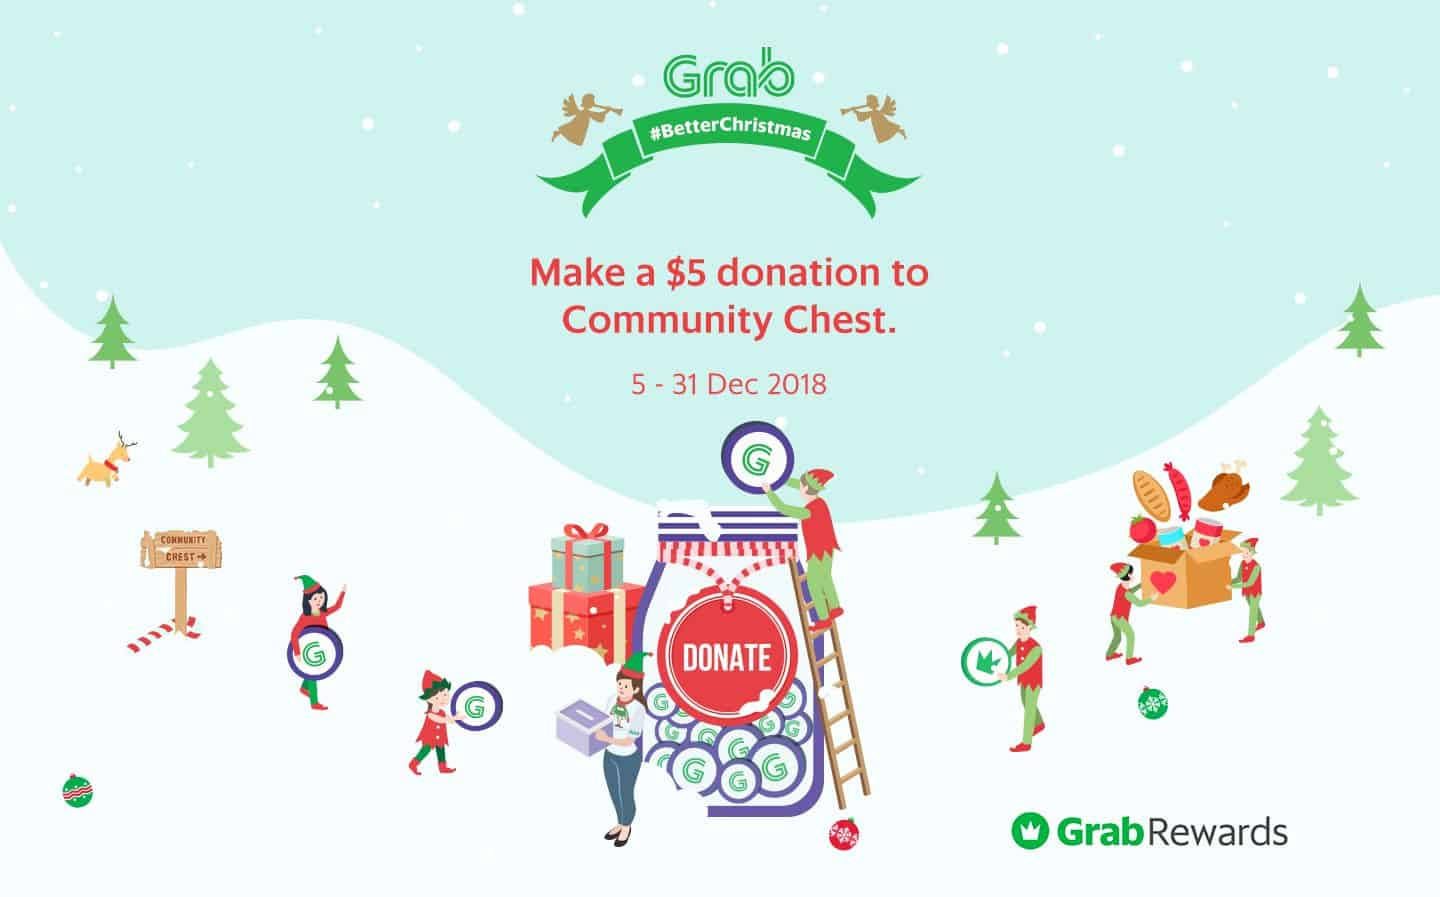 Make a $5 donation to Community Chest. 5 - 31 Dec 2018*